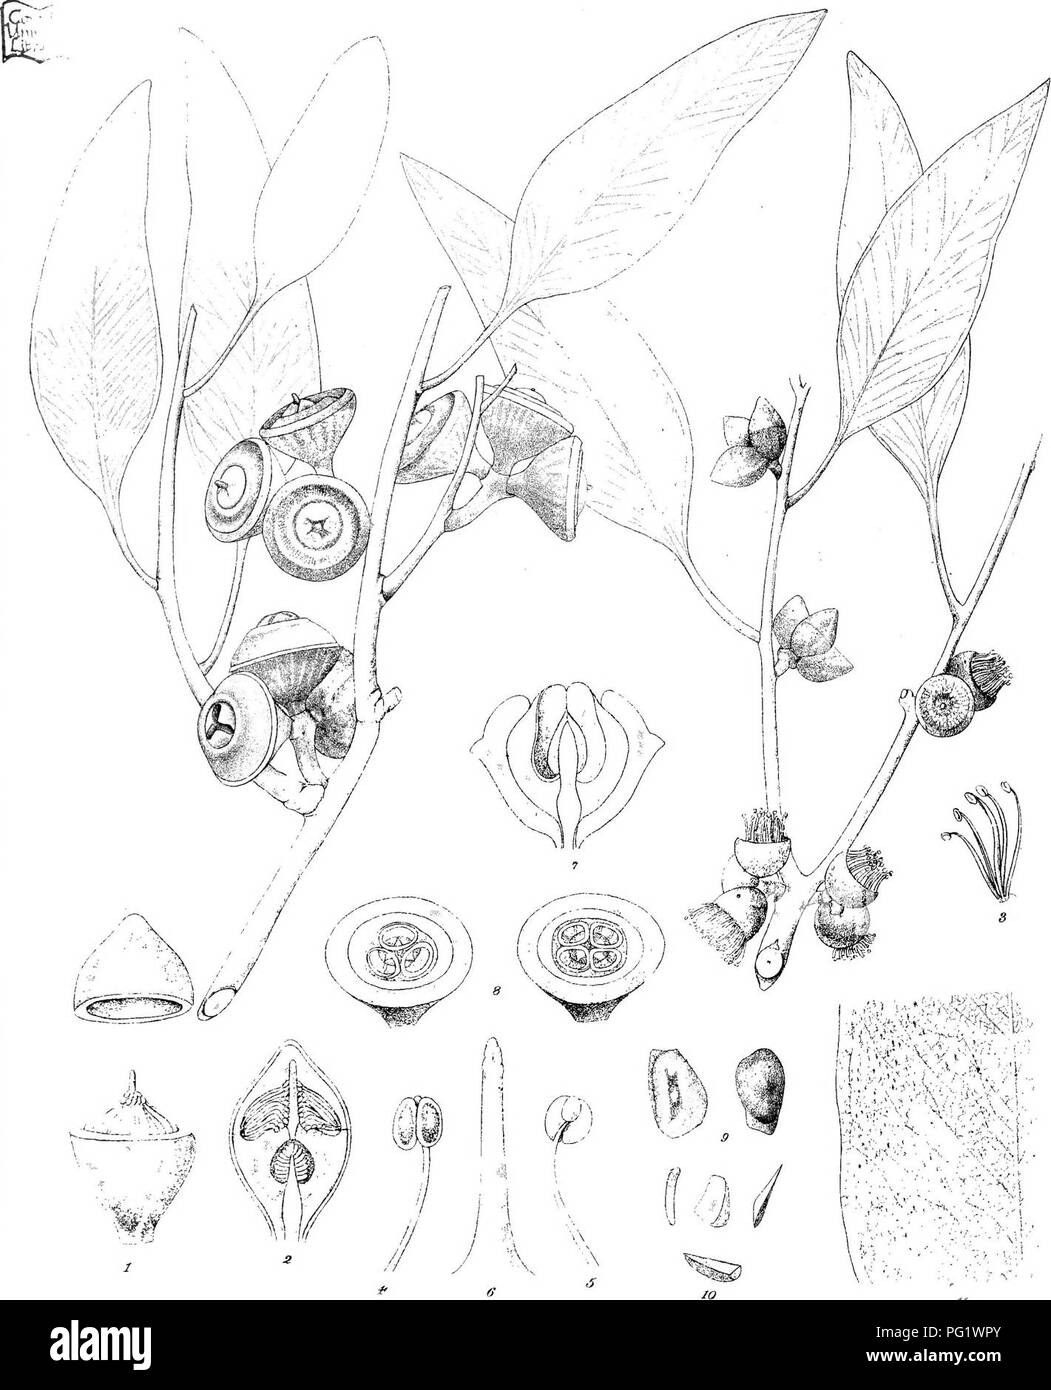 """. Eucalyptographia. A descriptive atlas of the eucalypts of Australia and the adjoining islands;. Eucalyptus; Botany. jf-/,..^j5i/xÂ«>'i;, tM''-::^ ;fi*'^'--,'i^-. m.]- t'r,r<i X"""". i/r-'X.- 'â C-f^:,:':-: !. ''.''',-':â [^)â """"  â :-"""".â '%â â ' ' ;' : '_'.'' """" â ''! â y â ' ' t ' ⢠â - > ' '-',""""'! // Tod'ifei :r-^KaC?Li'hh ']',' iirocA Sleam LiViiu Gov.PTinHusOfnee.Mell) aKgilfftii ©EtfidMi.T^i^. Please note that these images are extracted from scanned page images that may have been digitally enhanced for readability - coloration and appearance of these - Stock Image"""